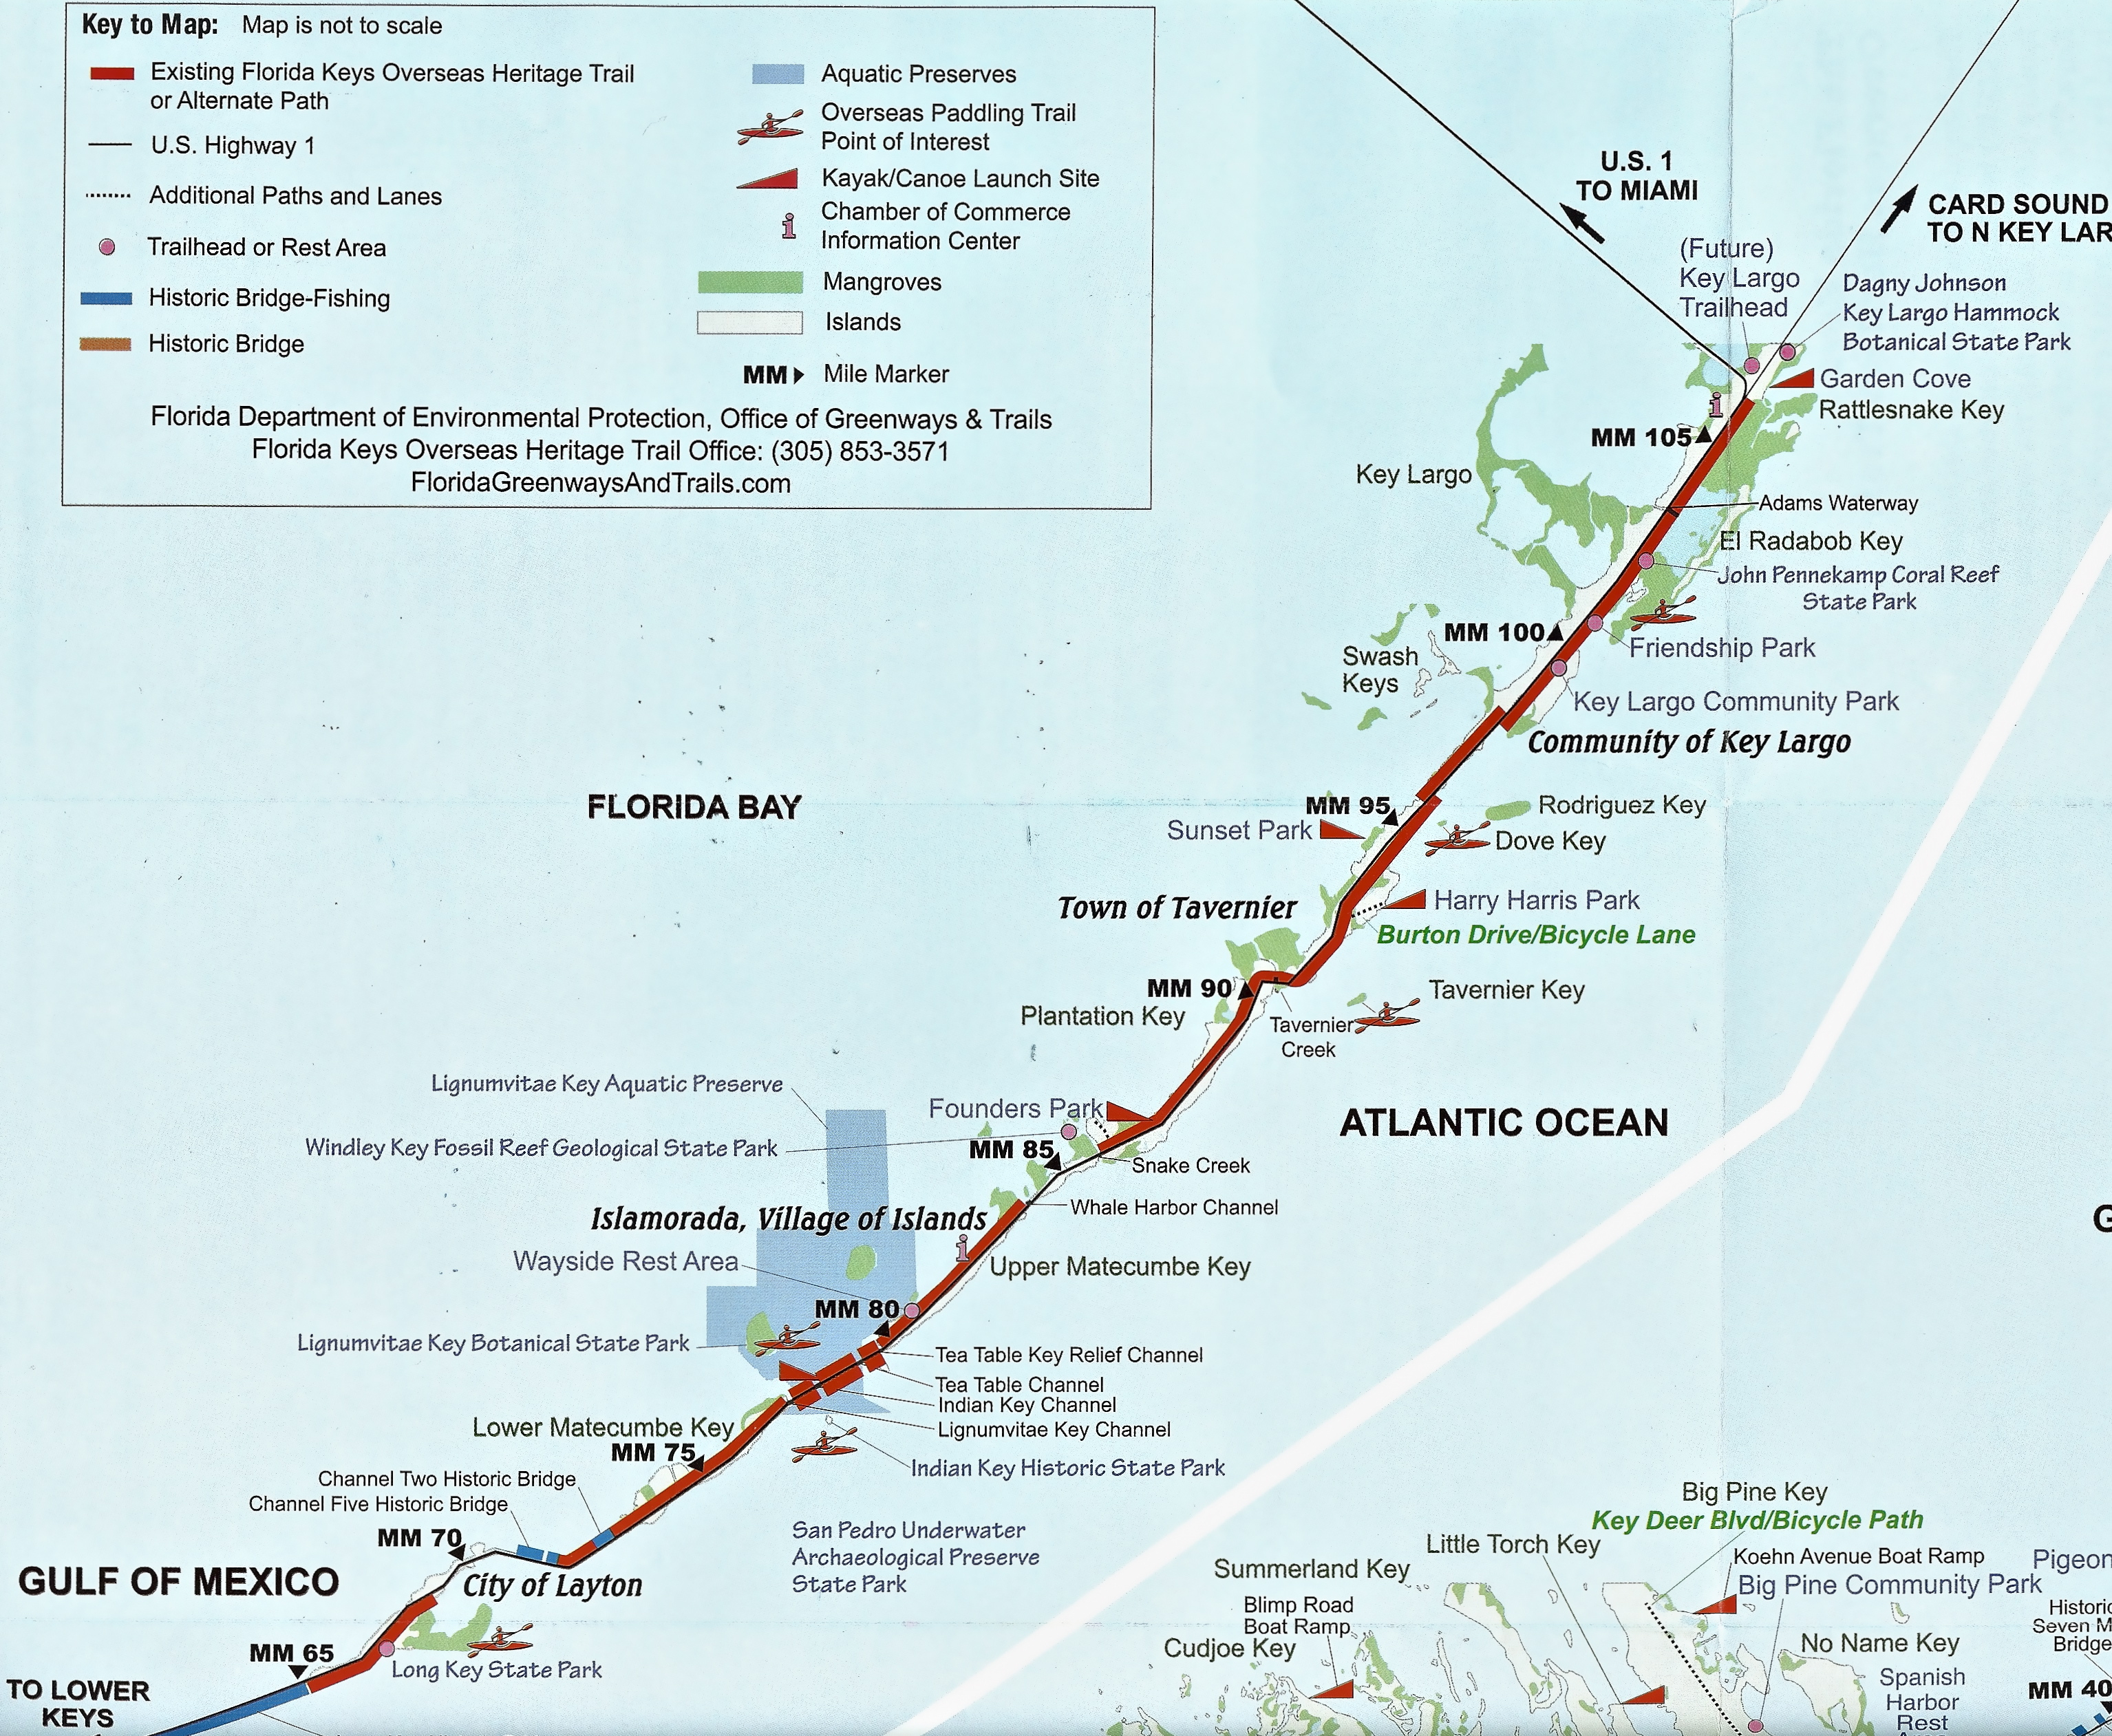 Our Island Home | Come Visit The American Caribbean… | Page 4 - Road Map Florida Keys